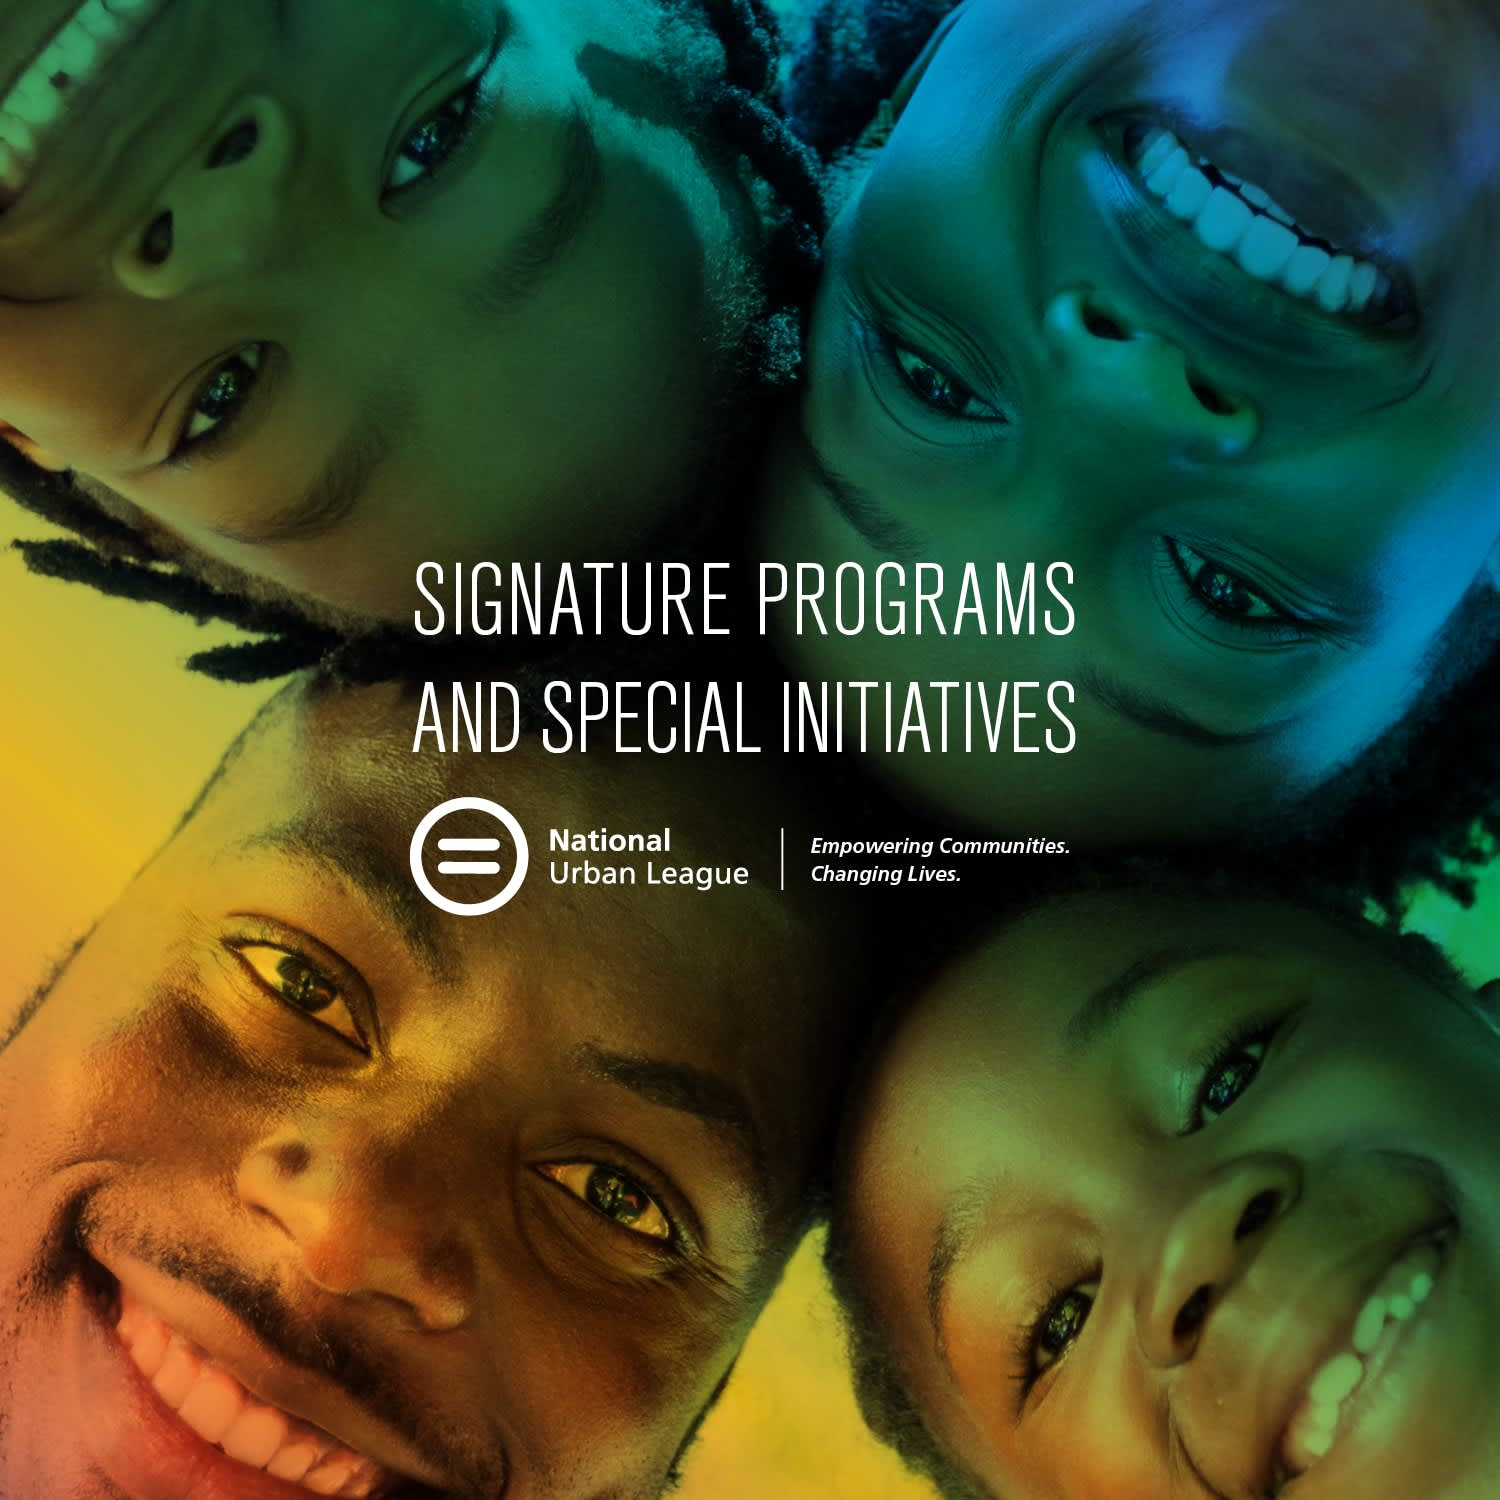 National Urban League Programs